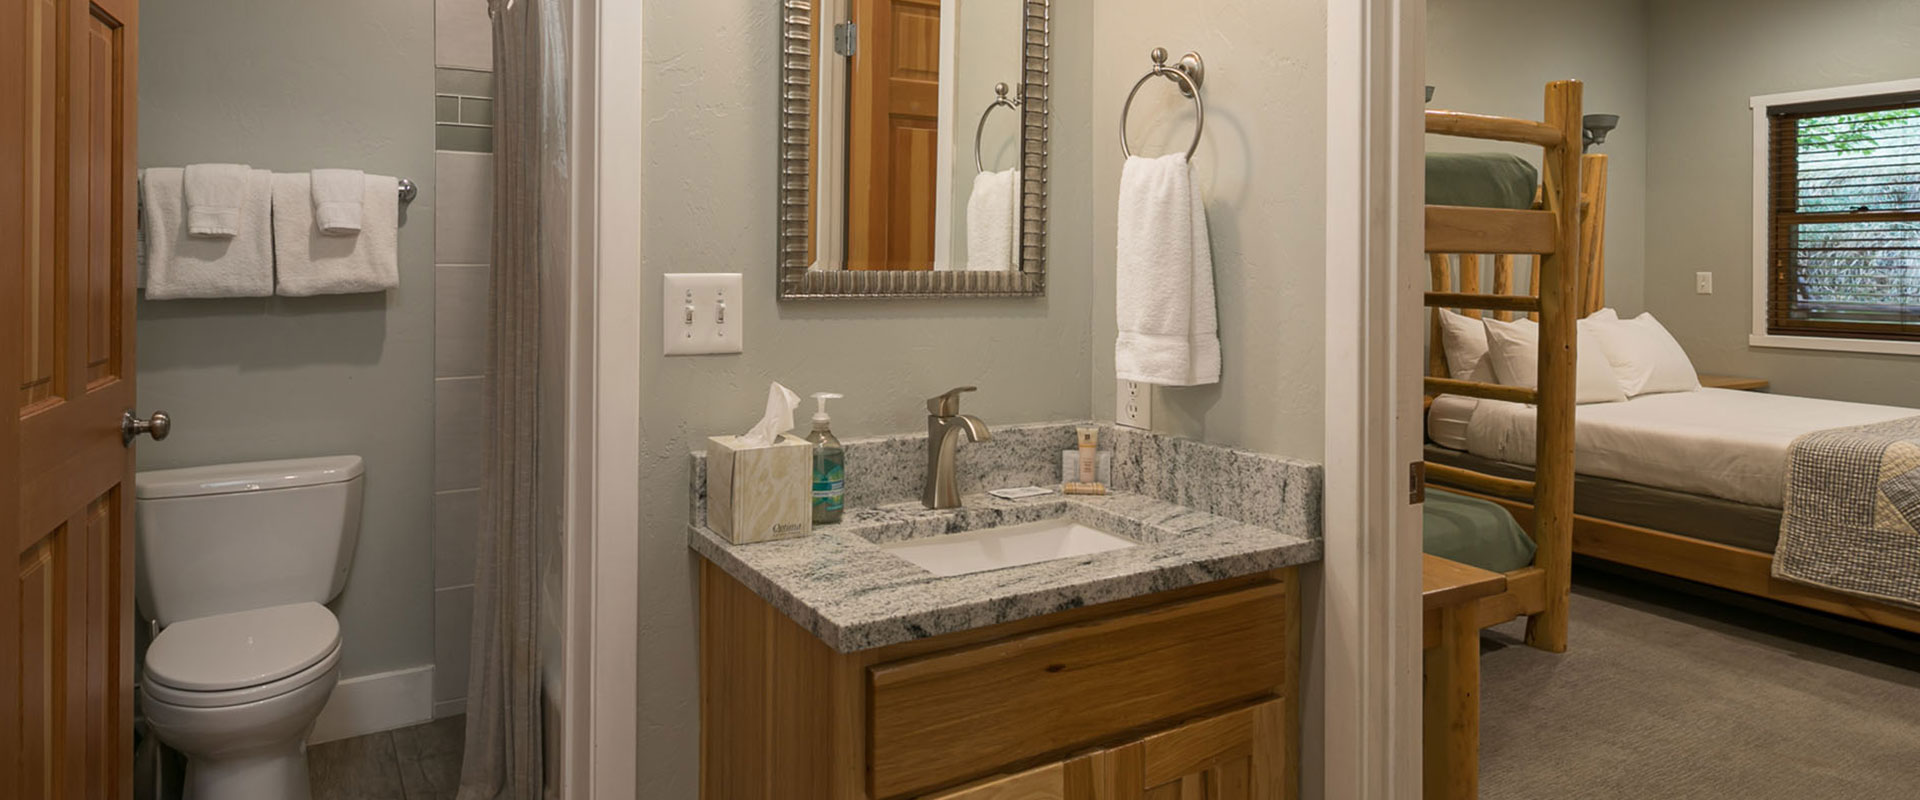 In the daylight, a white ghostly silohuette of a round moon appears against the blue sky and the red brown craggy sandstone cliffs of Moab, Utah.